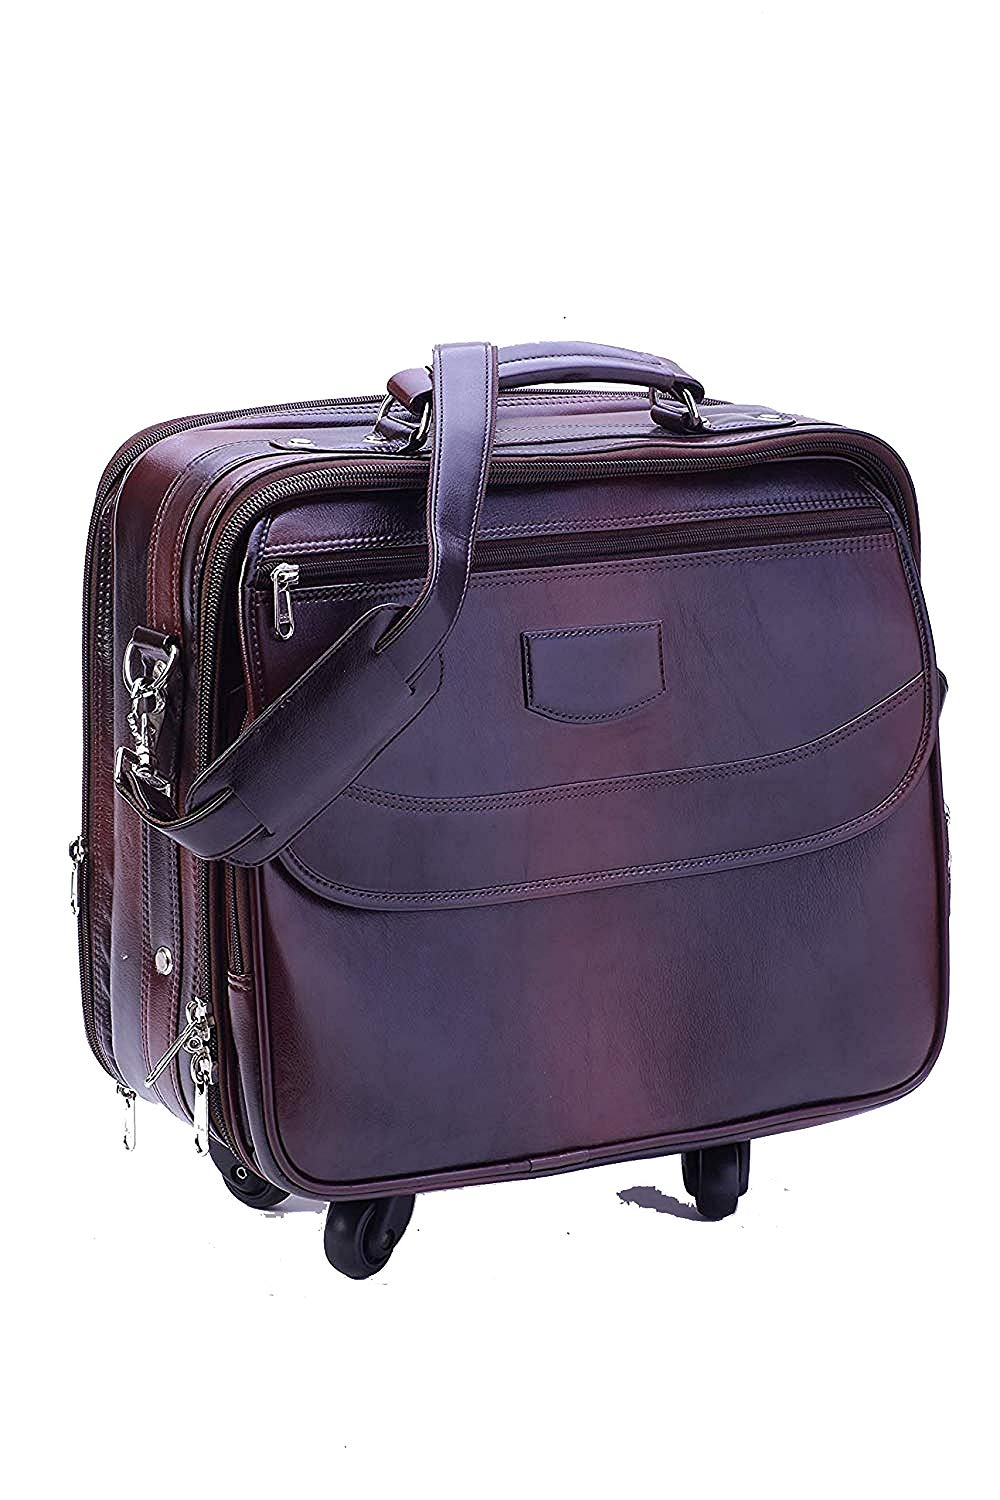 Brown Leatherette OverNighter Trolley Four Wheeler - Laptop Trolley Bag